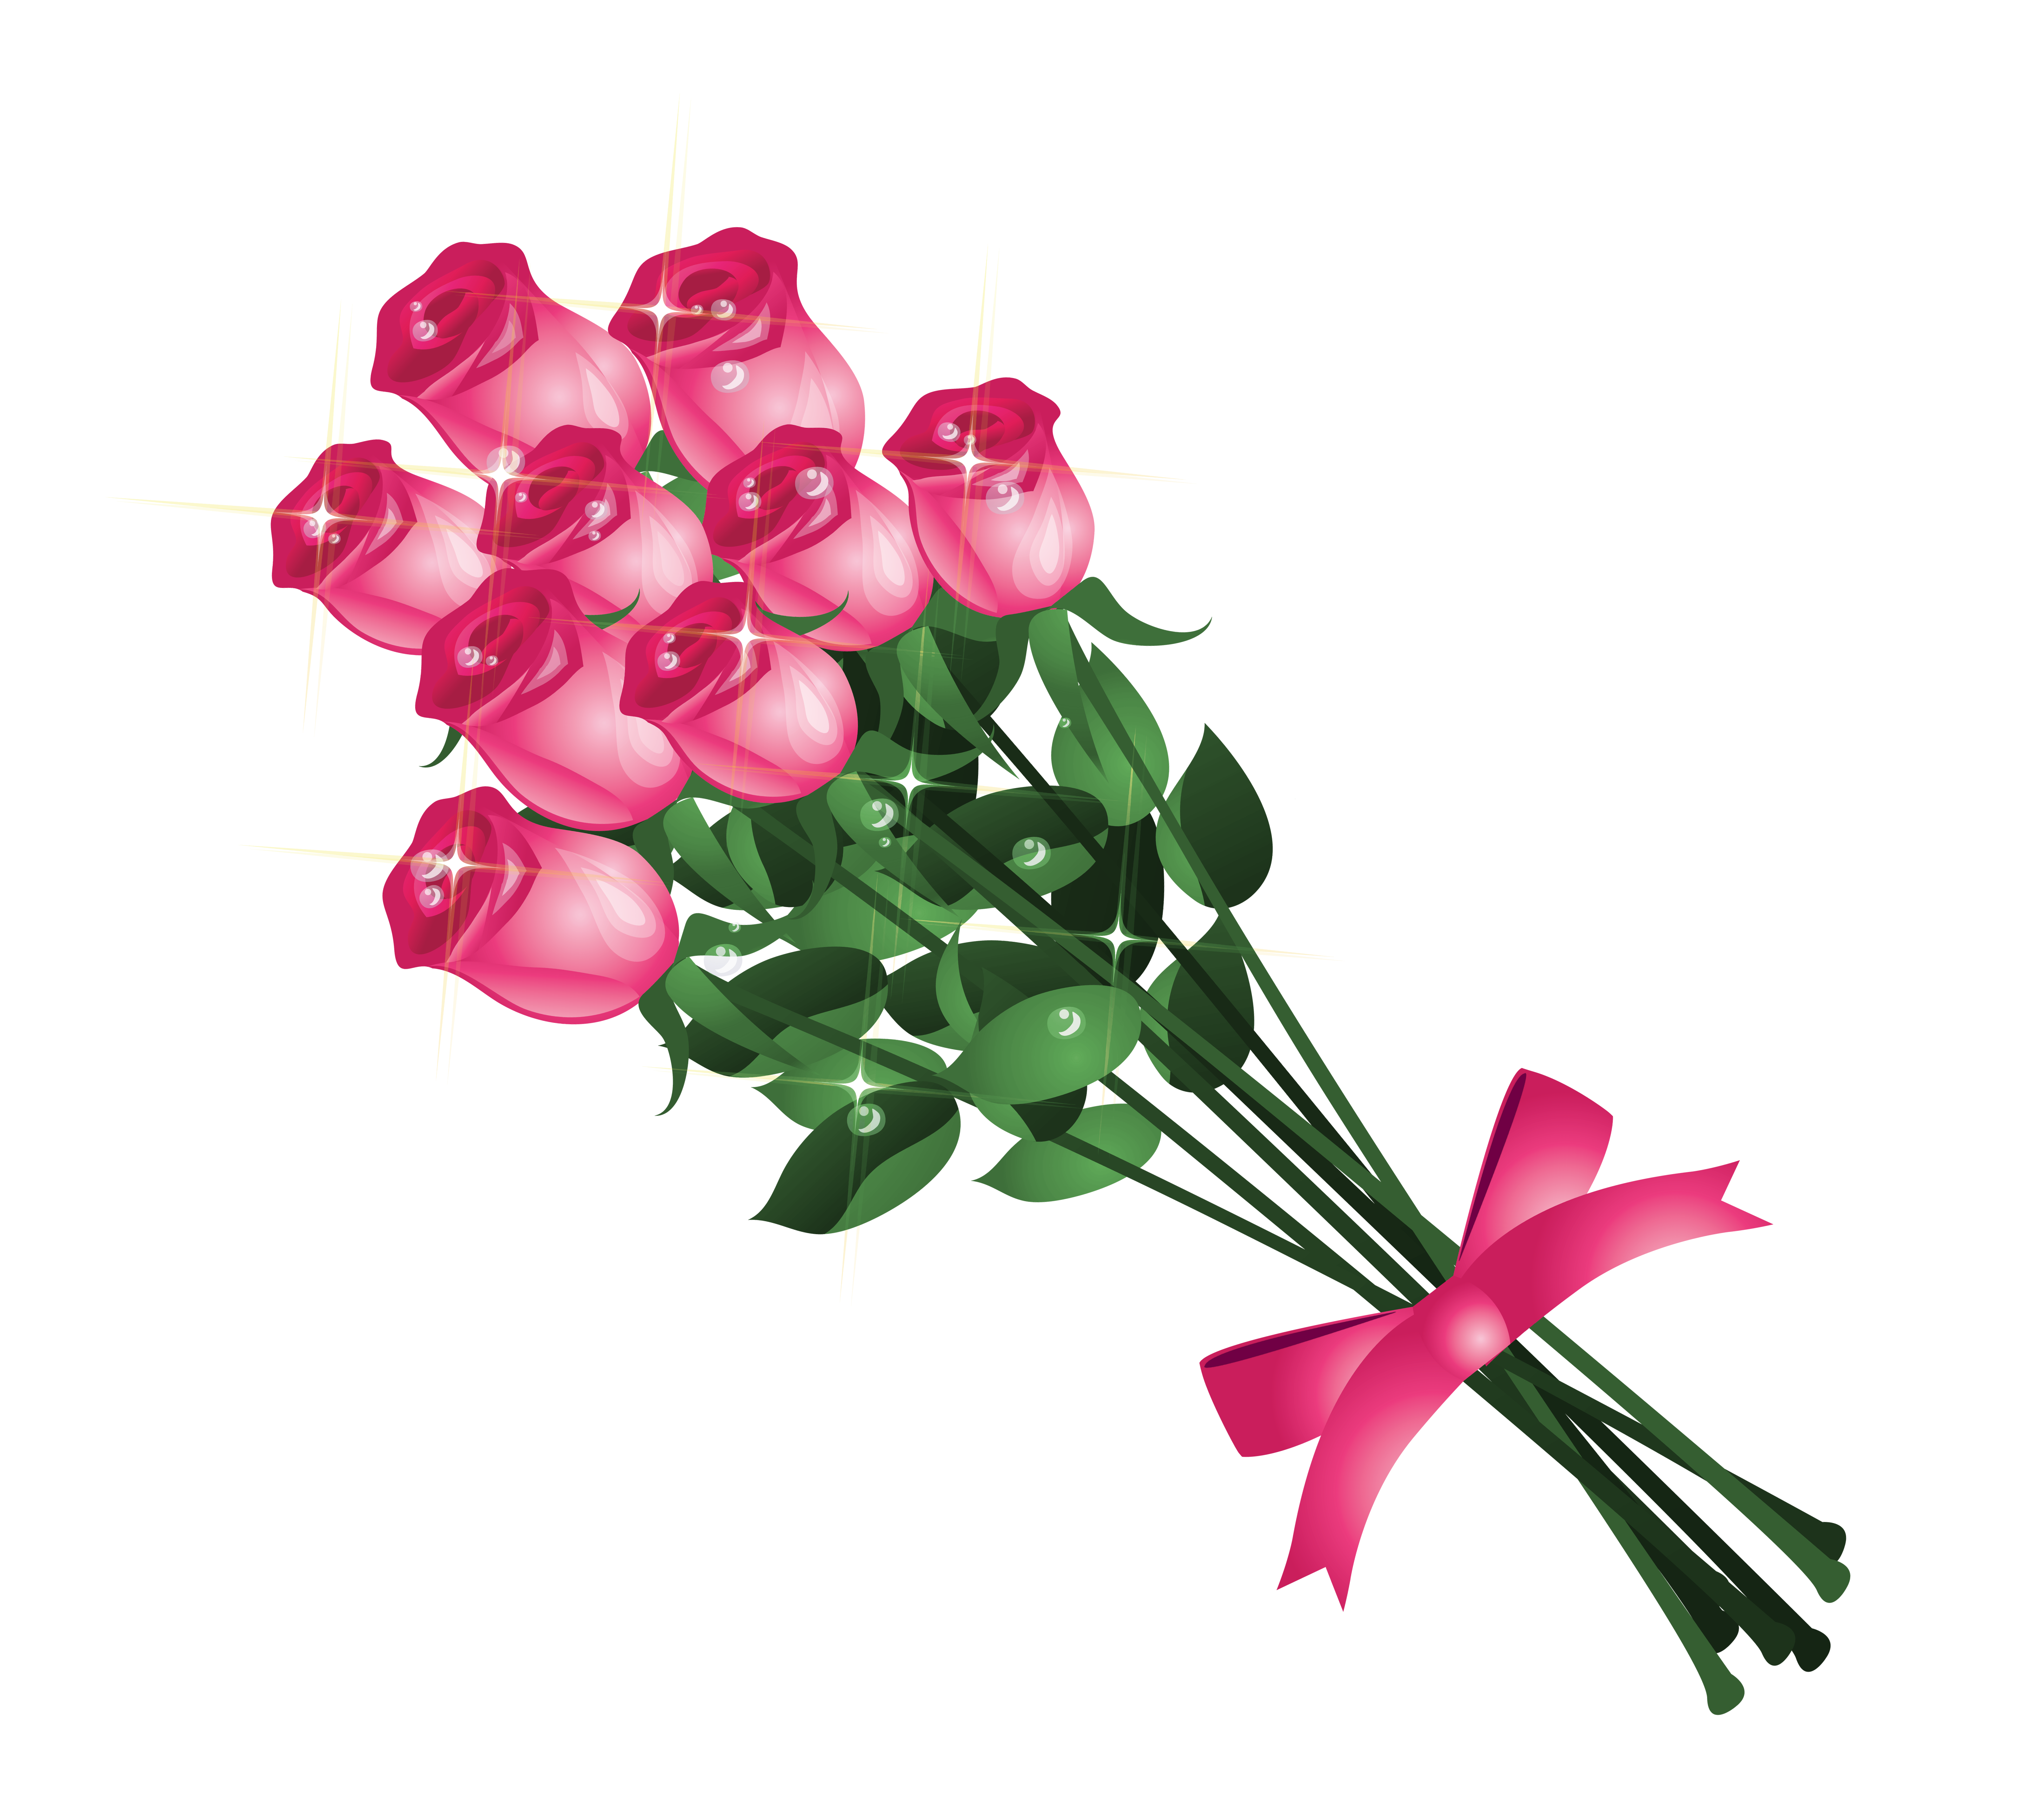 flower bouquet clipart transparent background